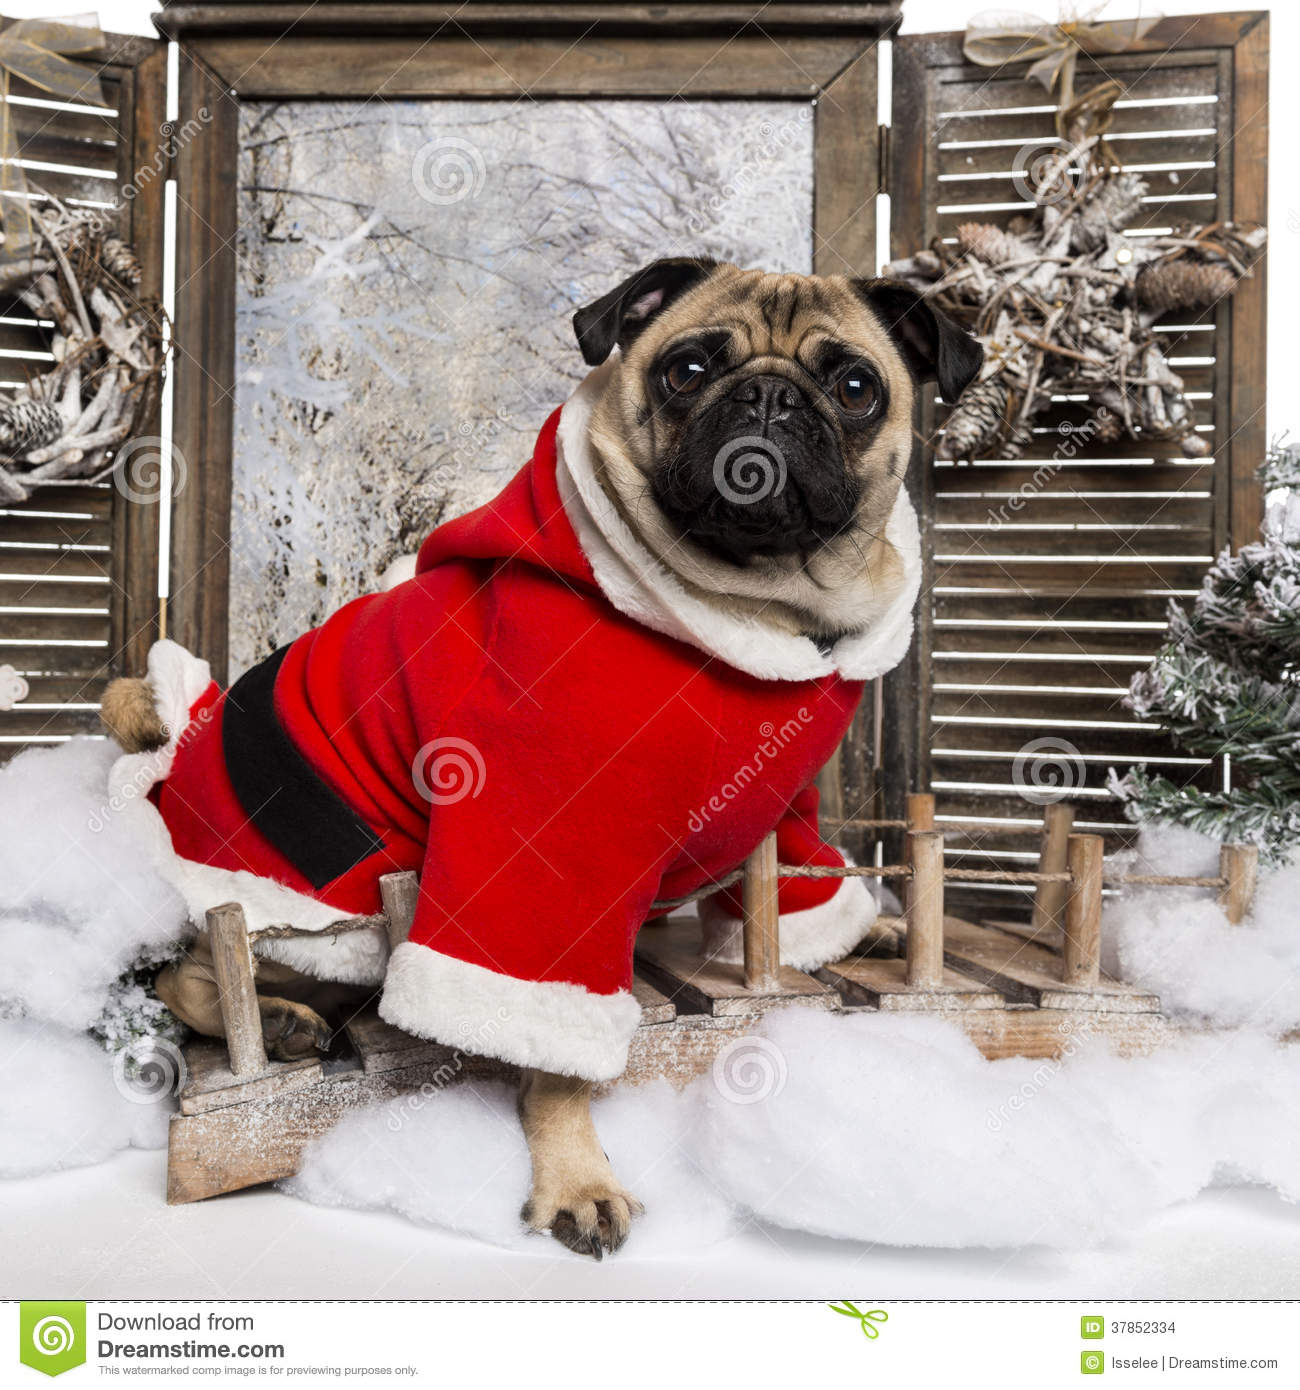 Pug wearing a christmas suit sitting in a winter scenery